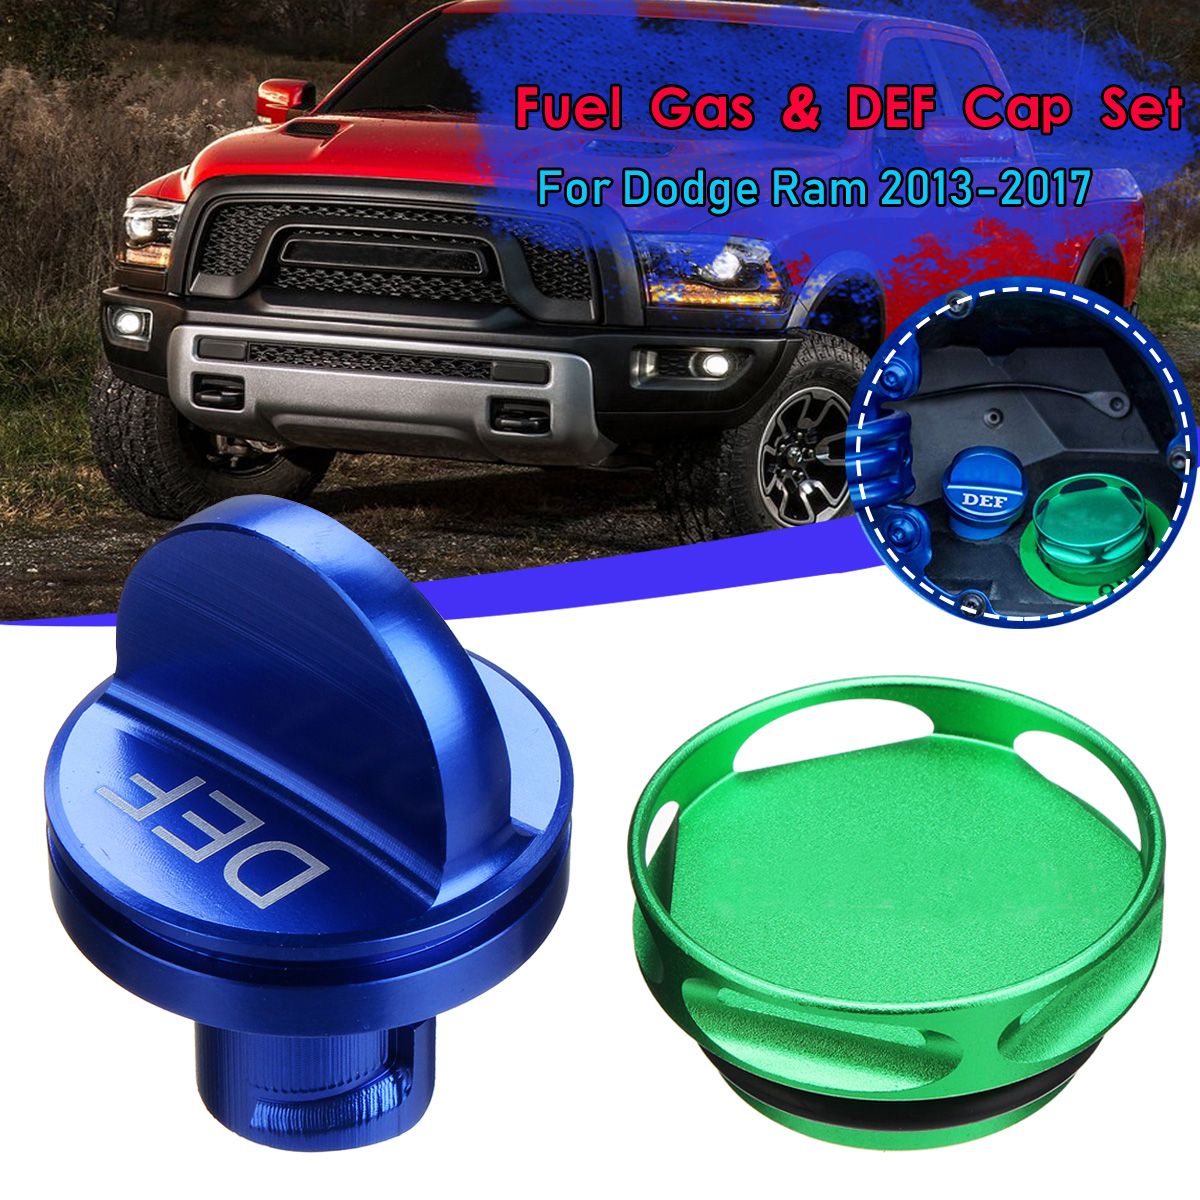 Automobiles & Motorcycles Auto Replacement Parts Alloy Aluminum Magnetic Truck Fuel Oil Def Cap Cover Engine Oil Tank Cover For Dodge Ram 2013-2017